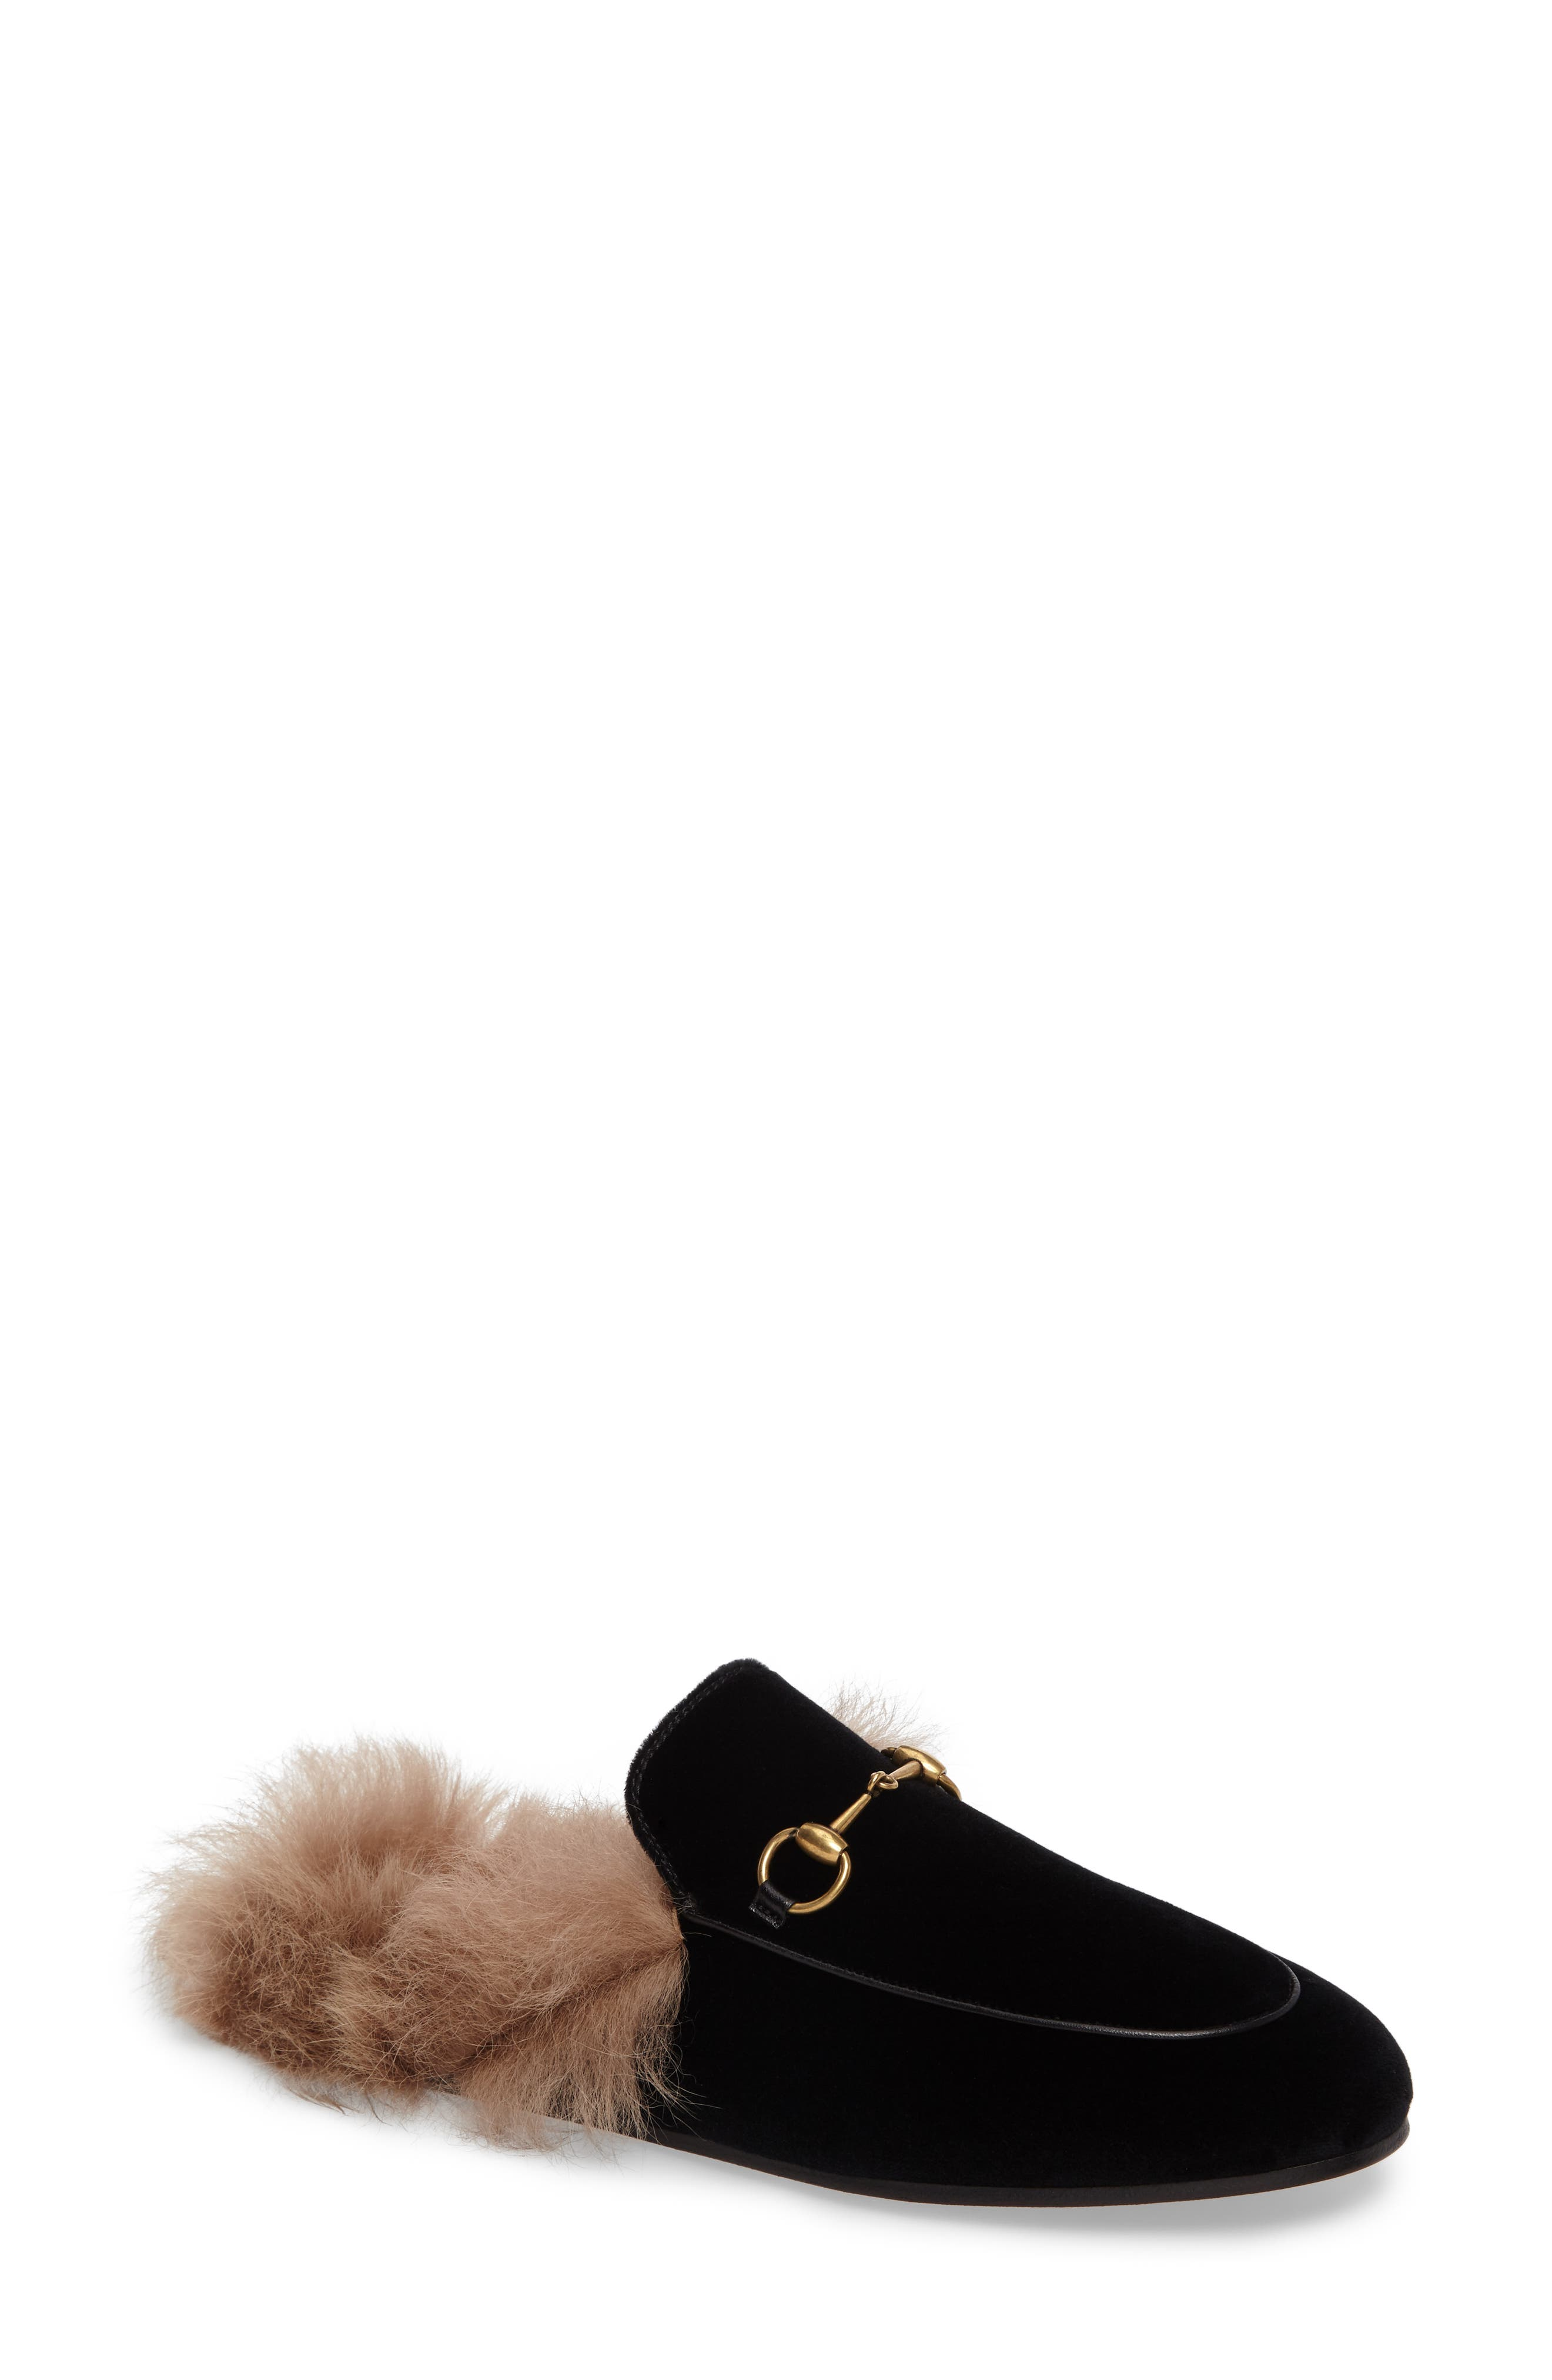 Alternate Image 1 Selected - Gucci 'Princetown' Genuine Shearling Mule Loafer (Women)